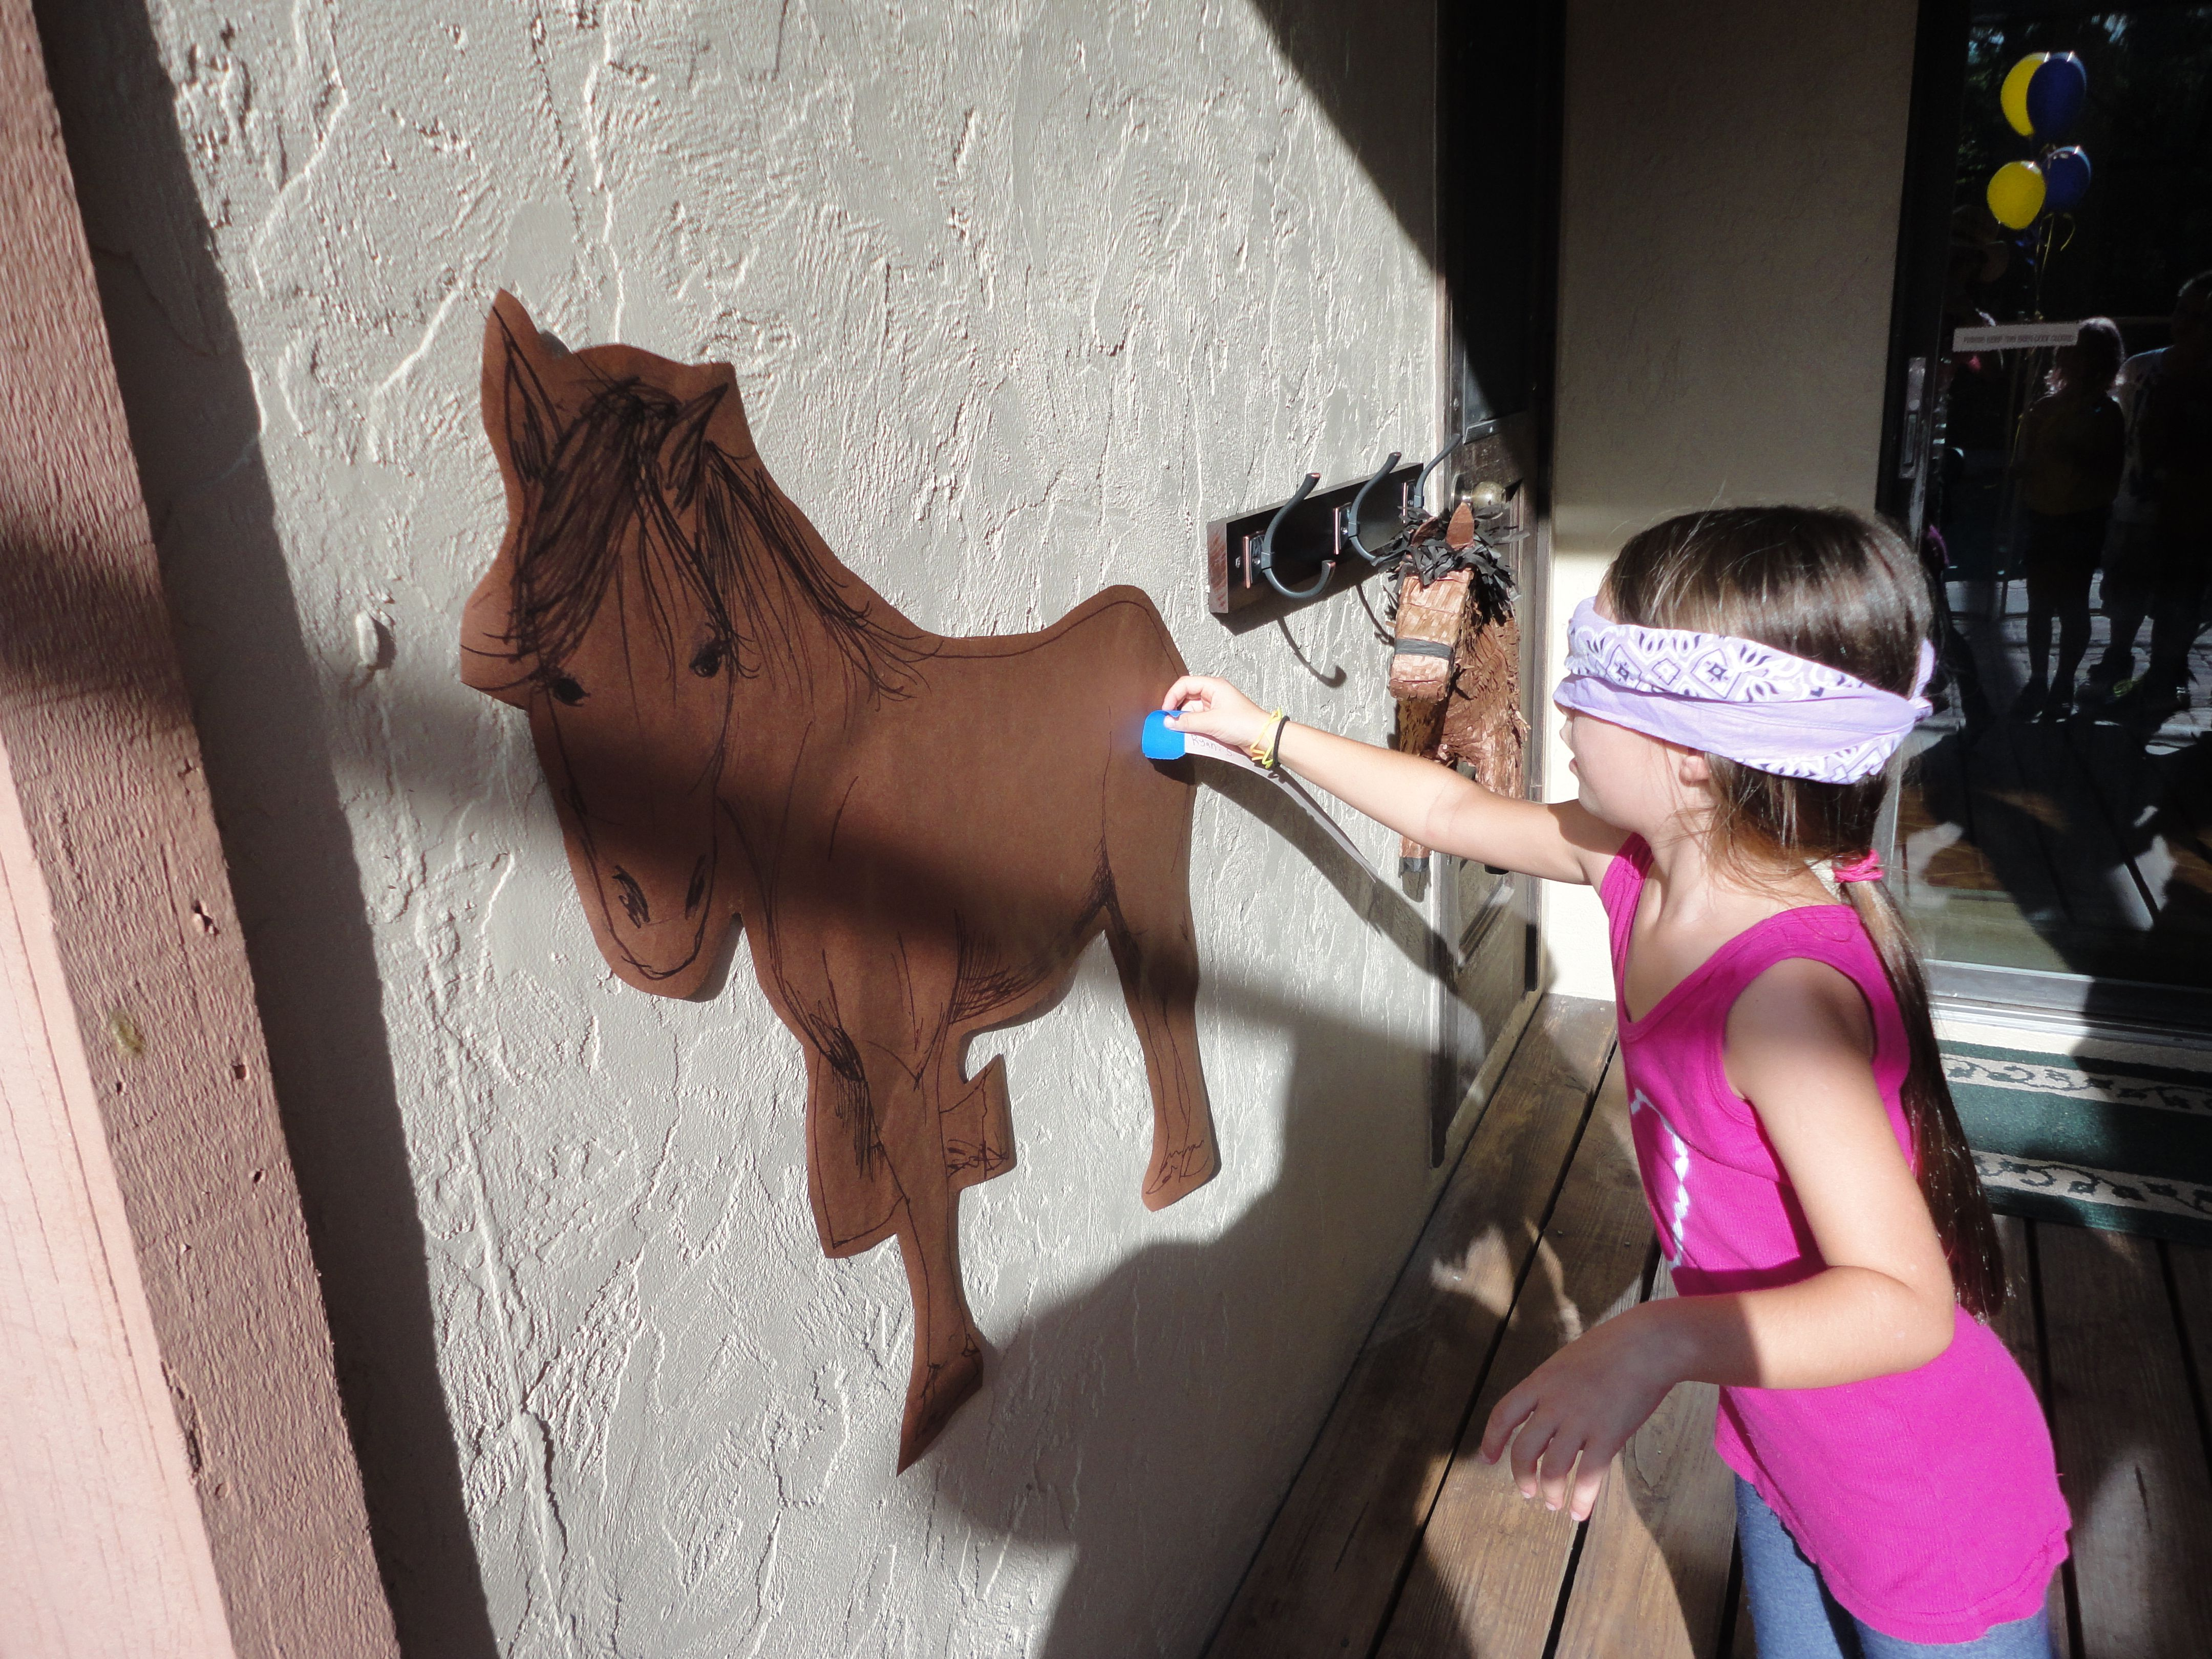 Make Your Own Pin The Tail On Pony Party In